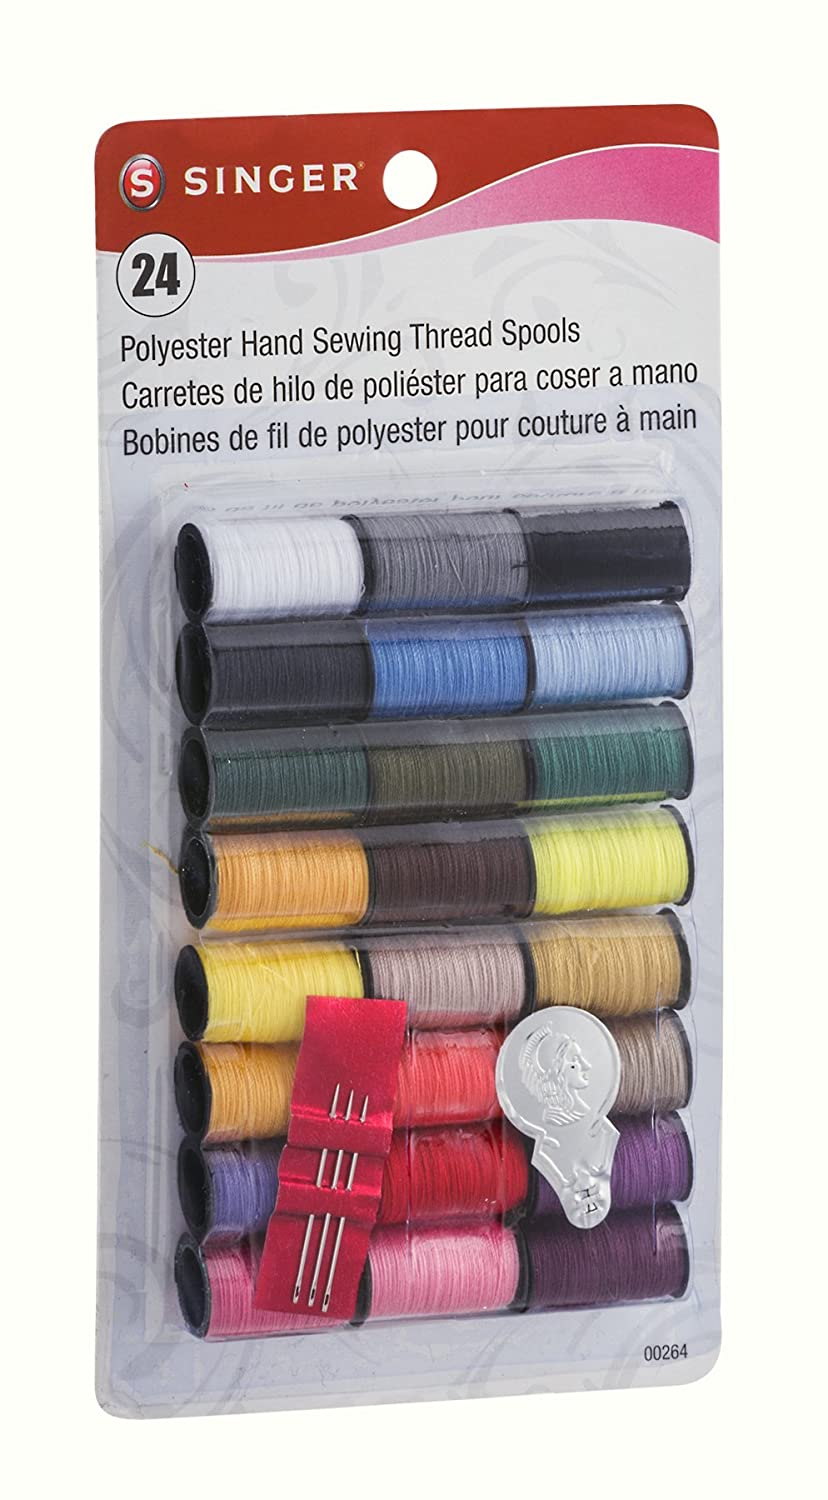 Singer 00264 Assorted Colors 100% Spun Polyester Thread 24 Count: Amazon.com: Grocery & Gourmet Food